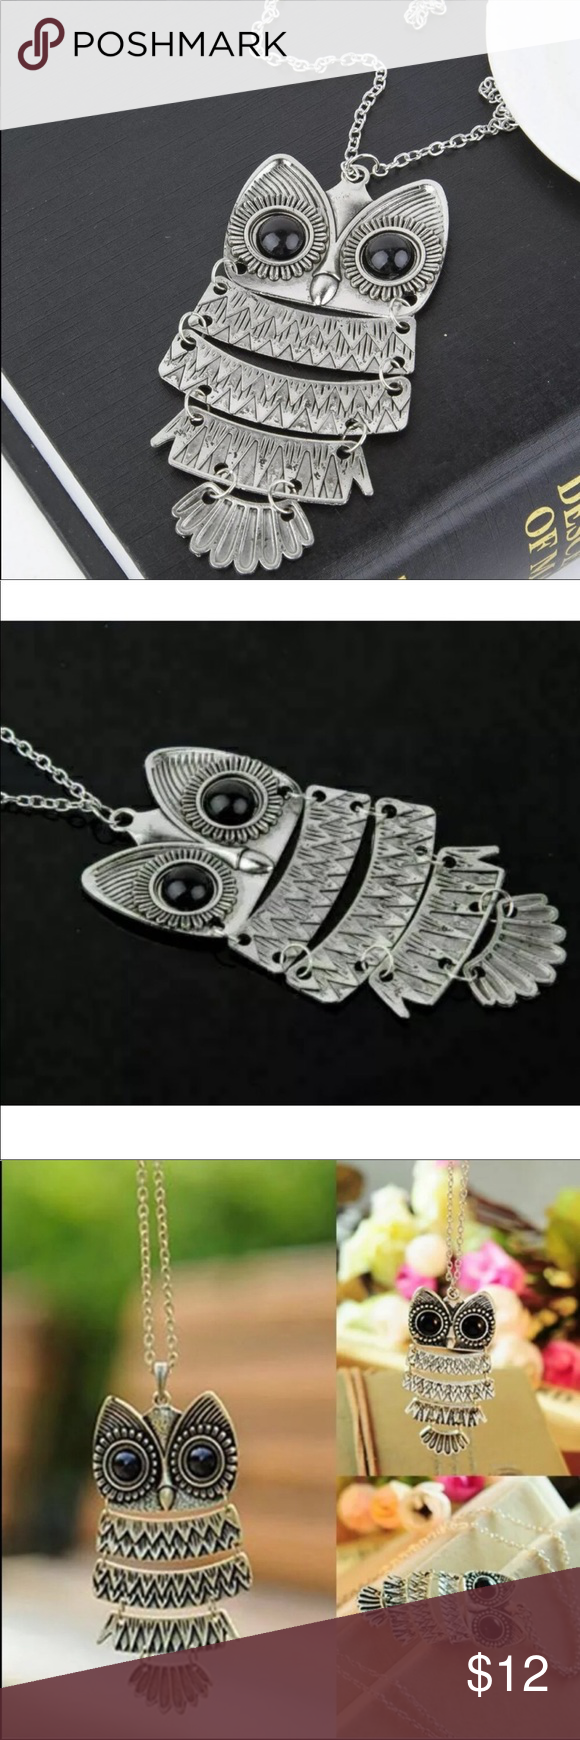 """Photo of Silver Owl Pendant Necklace Silver Owl Pendant Necklace Chain 18 """"Alloy …"""